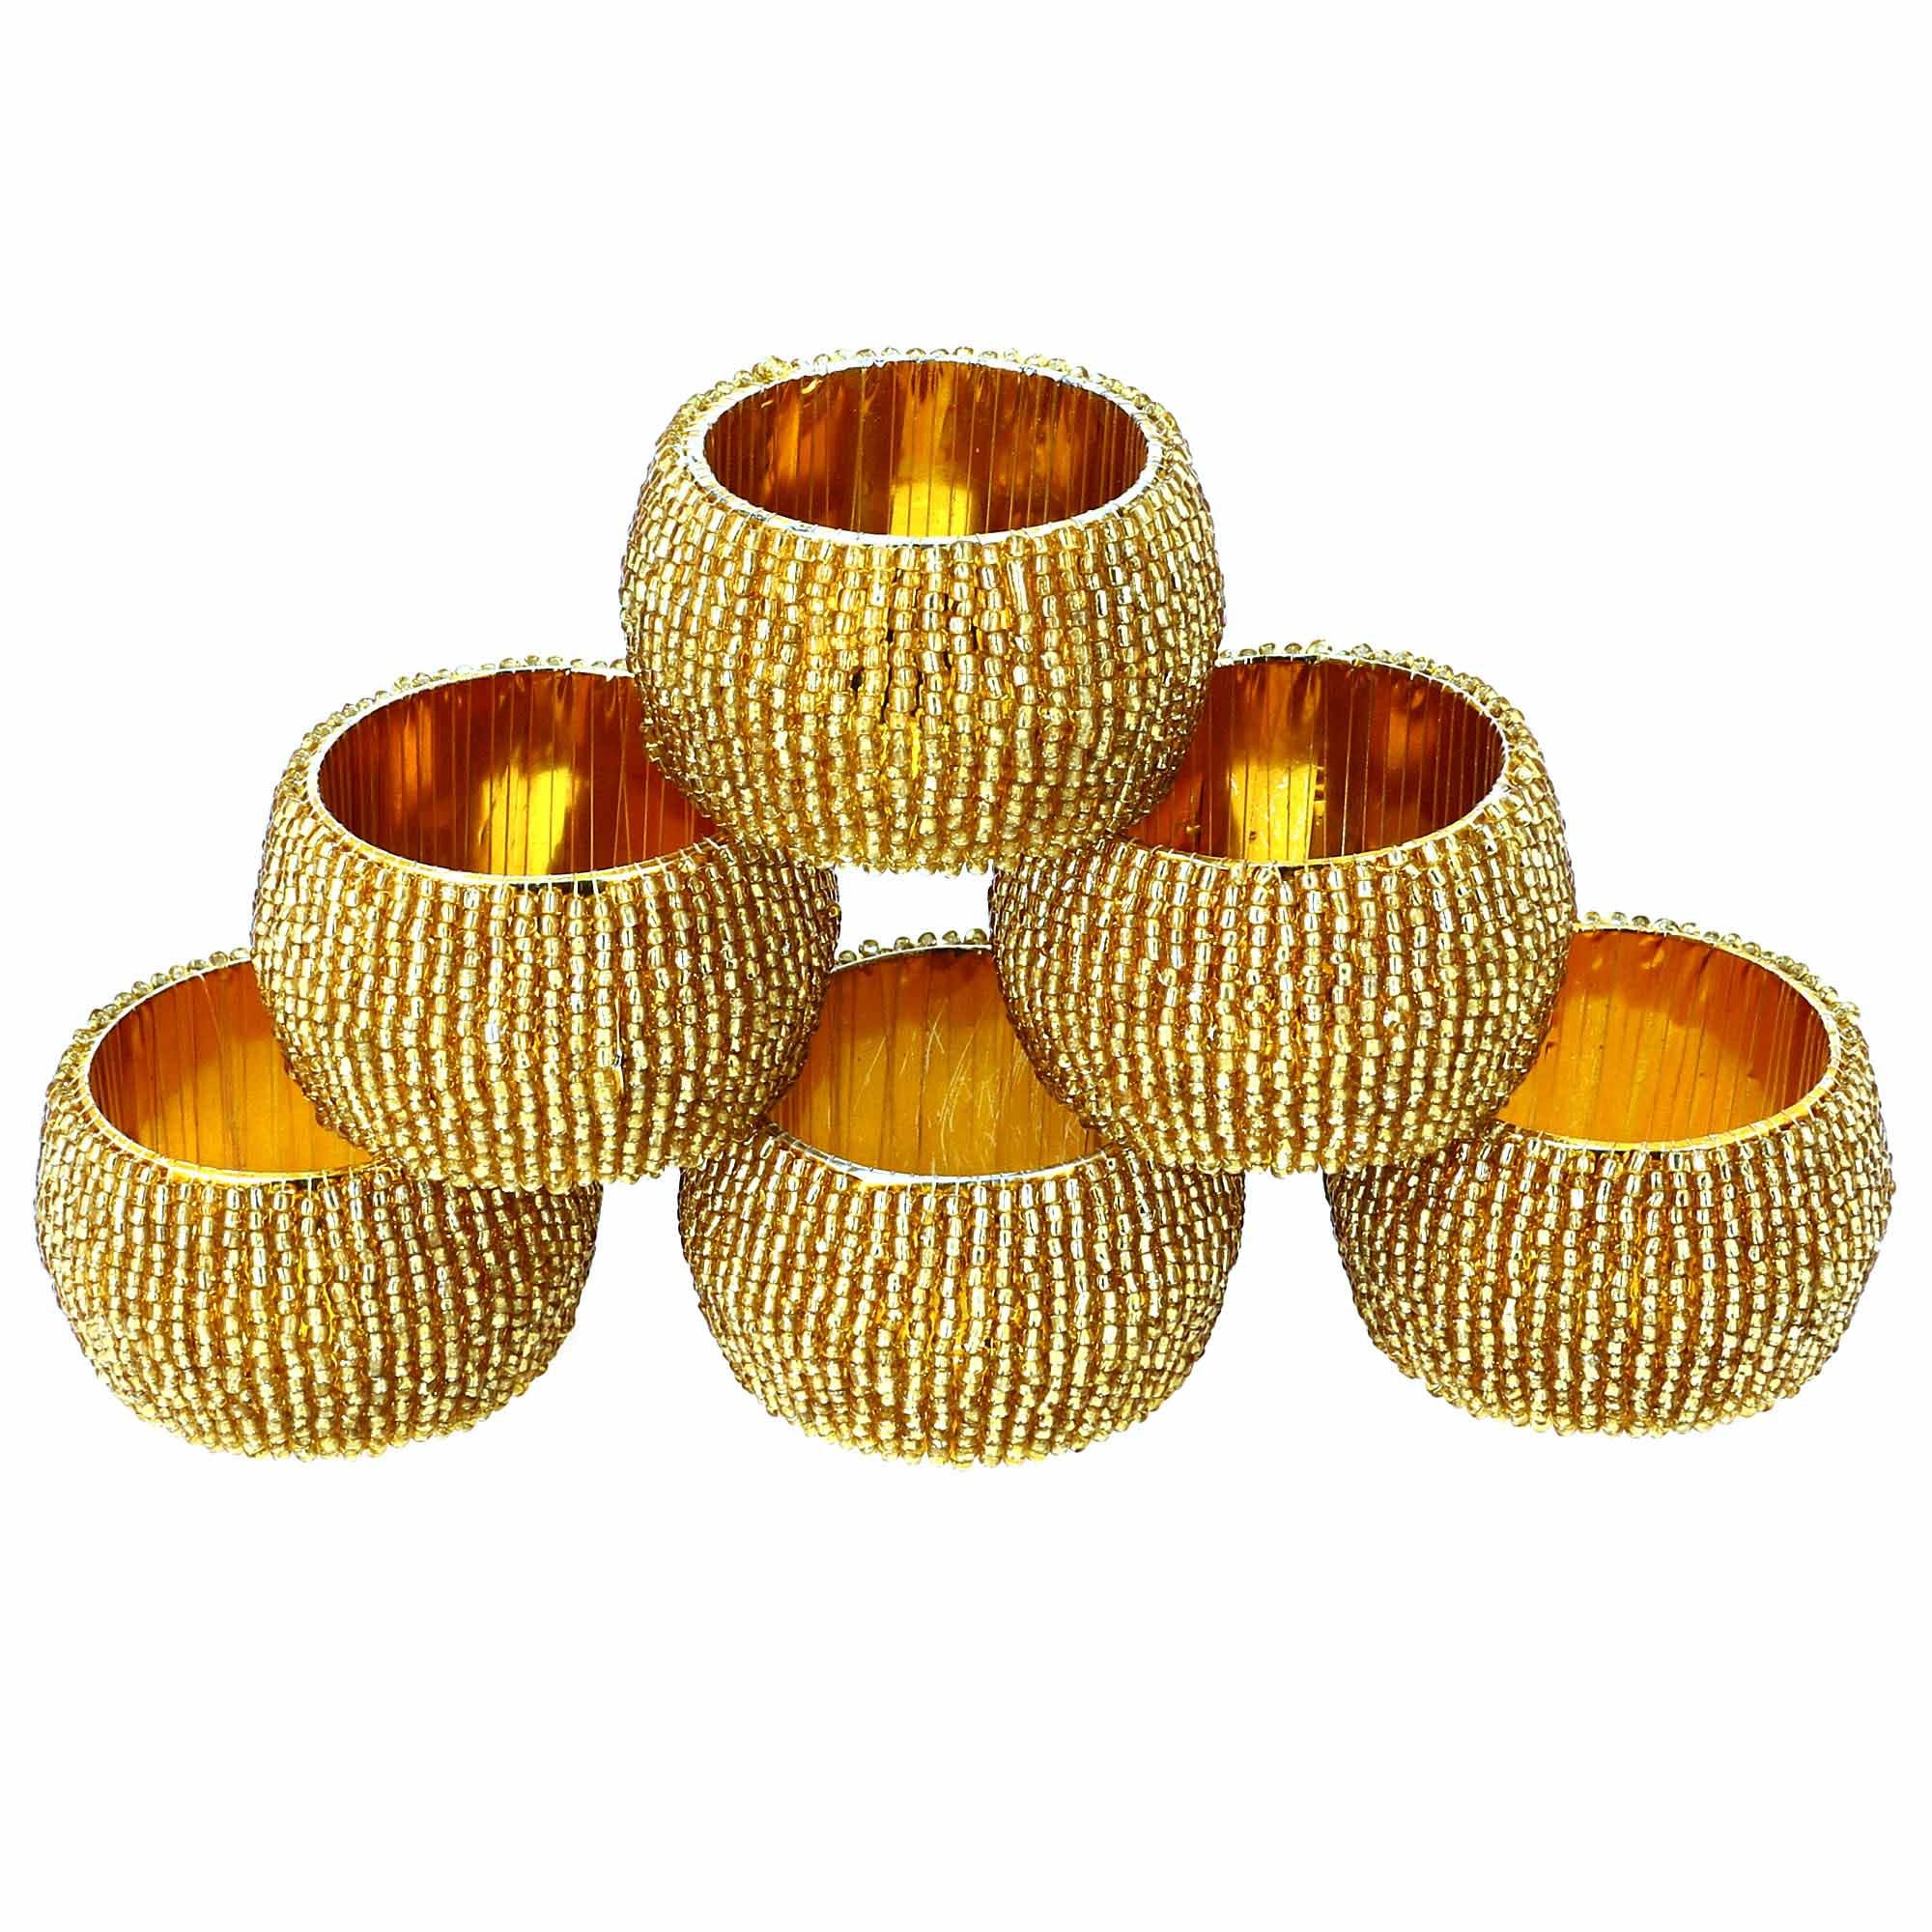 Artncraft Handmade Indian Gold Beaded Napkin Rings - Set of 6 Rings